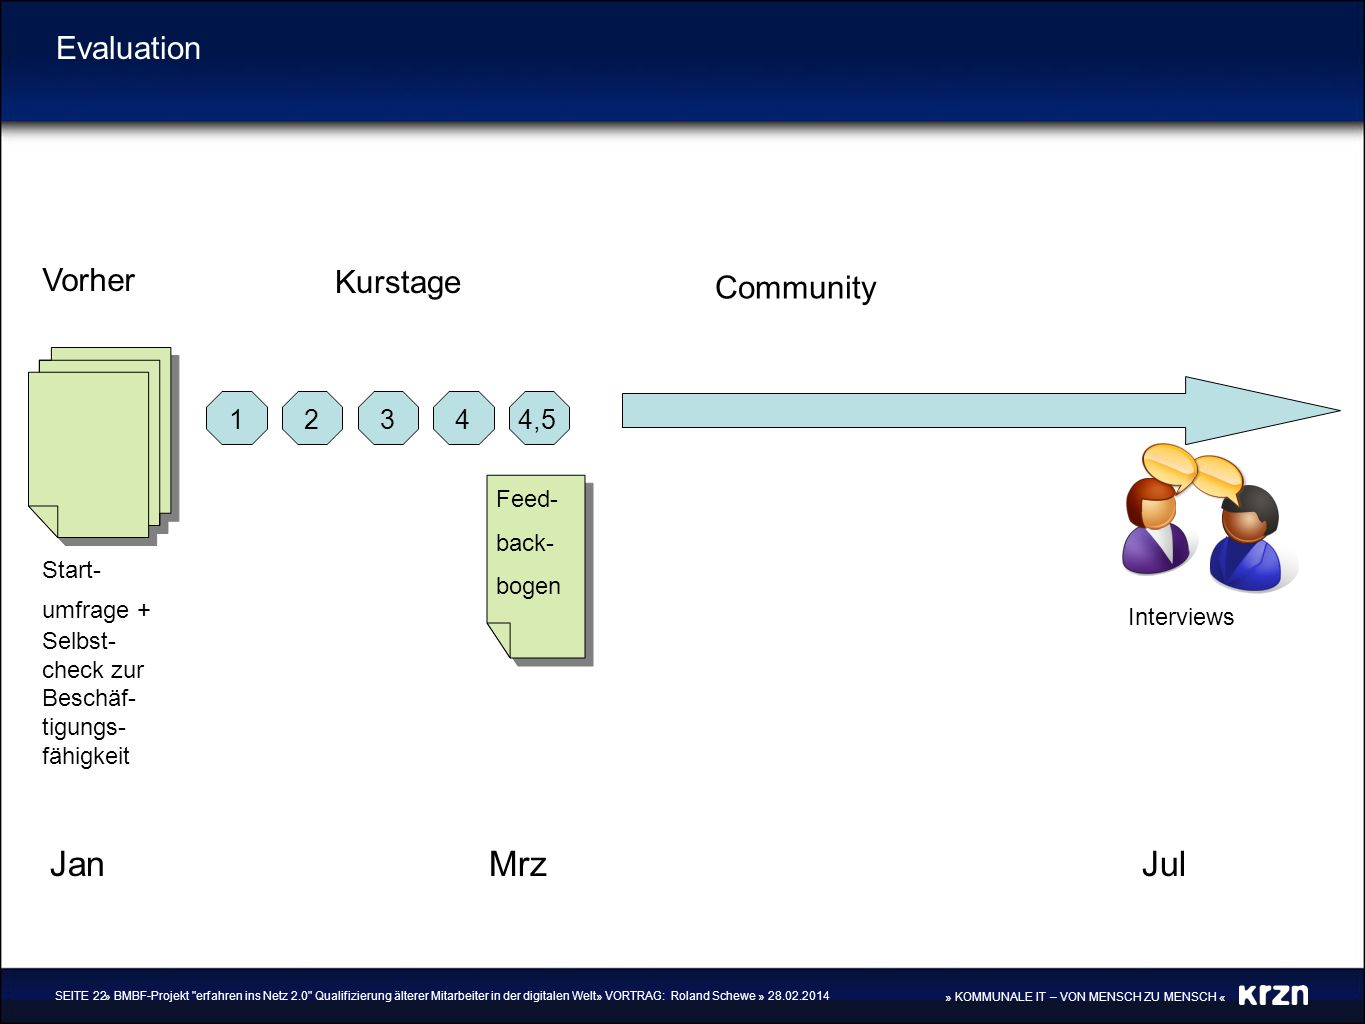 Jan Mrz Jul Evaluation Vorher Kurstage Community 1 2 3 4 4,5 Feed-